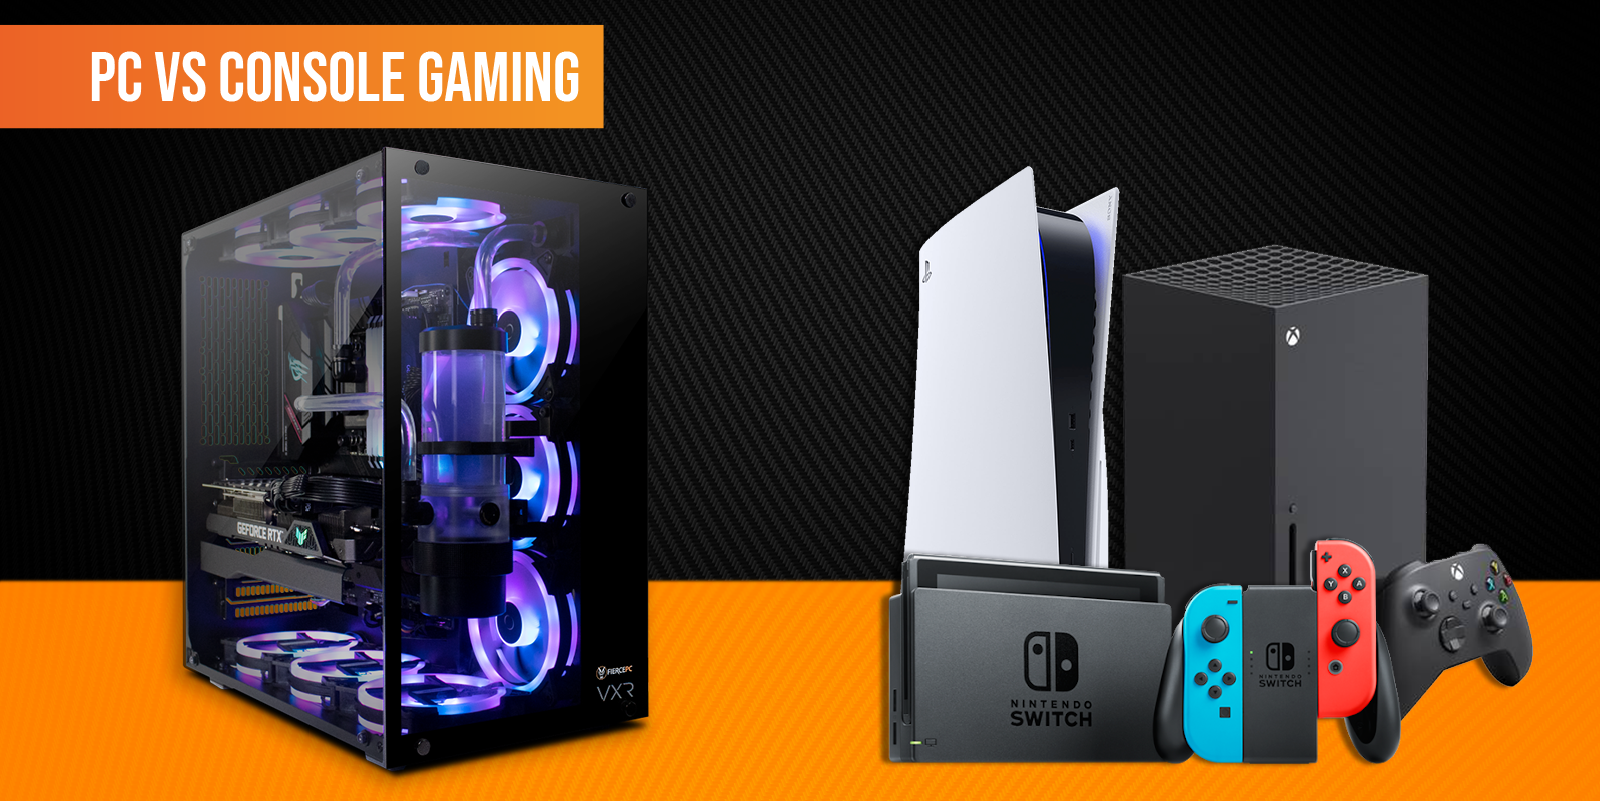 PC vs Console gaming, which should you choose?